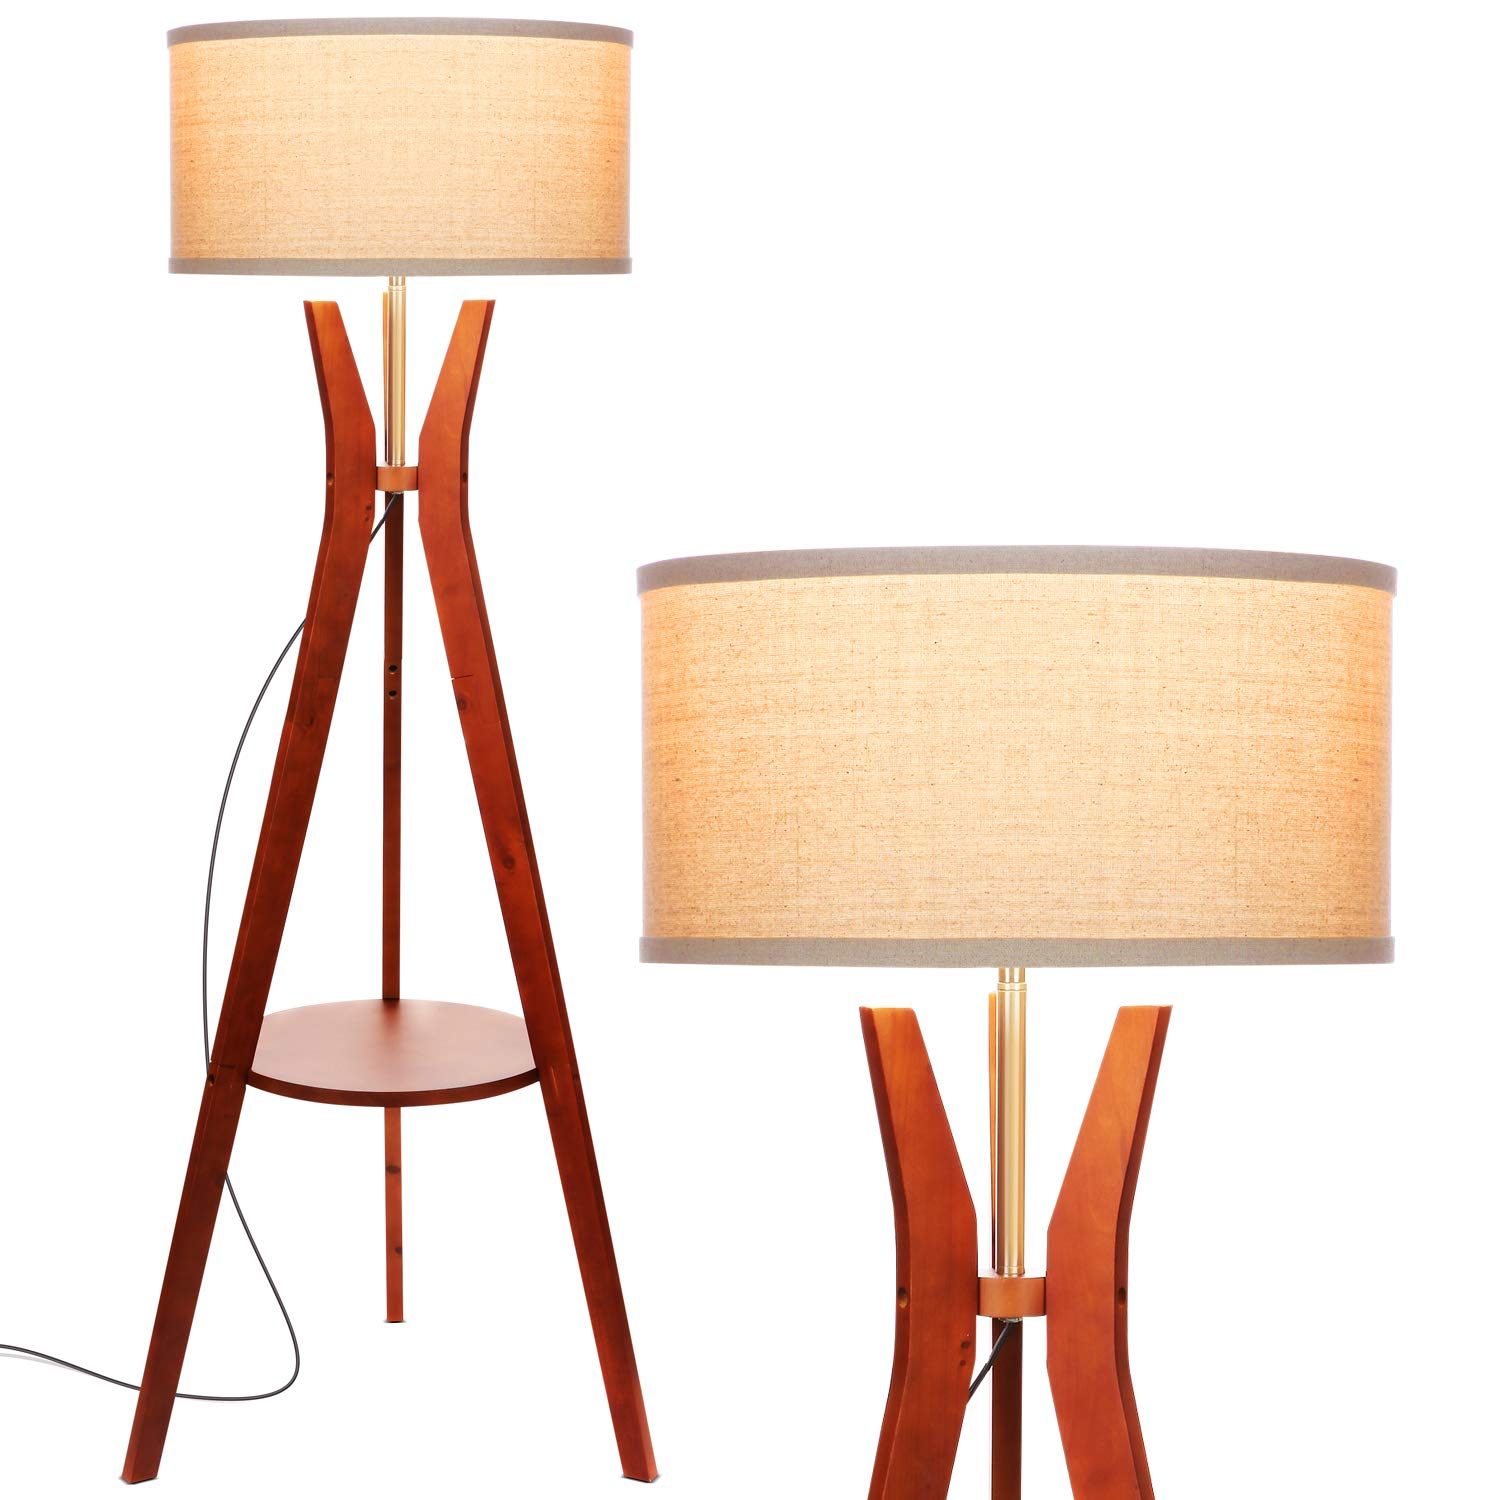 Brightech Charlotte: Rustic Shelf LED Floor Lamp - Tripod Standing Light for Mid Century Modern Living Rooms & Bedrooms - Contemporary, Tall Office Lamp - Drum Shade - Includes LED Bulb - Havana Brown